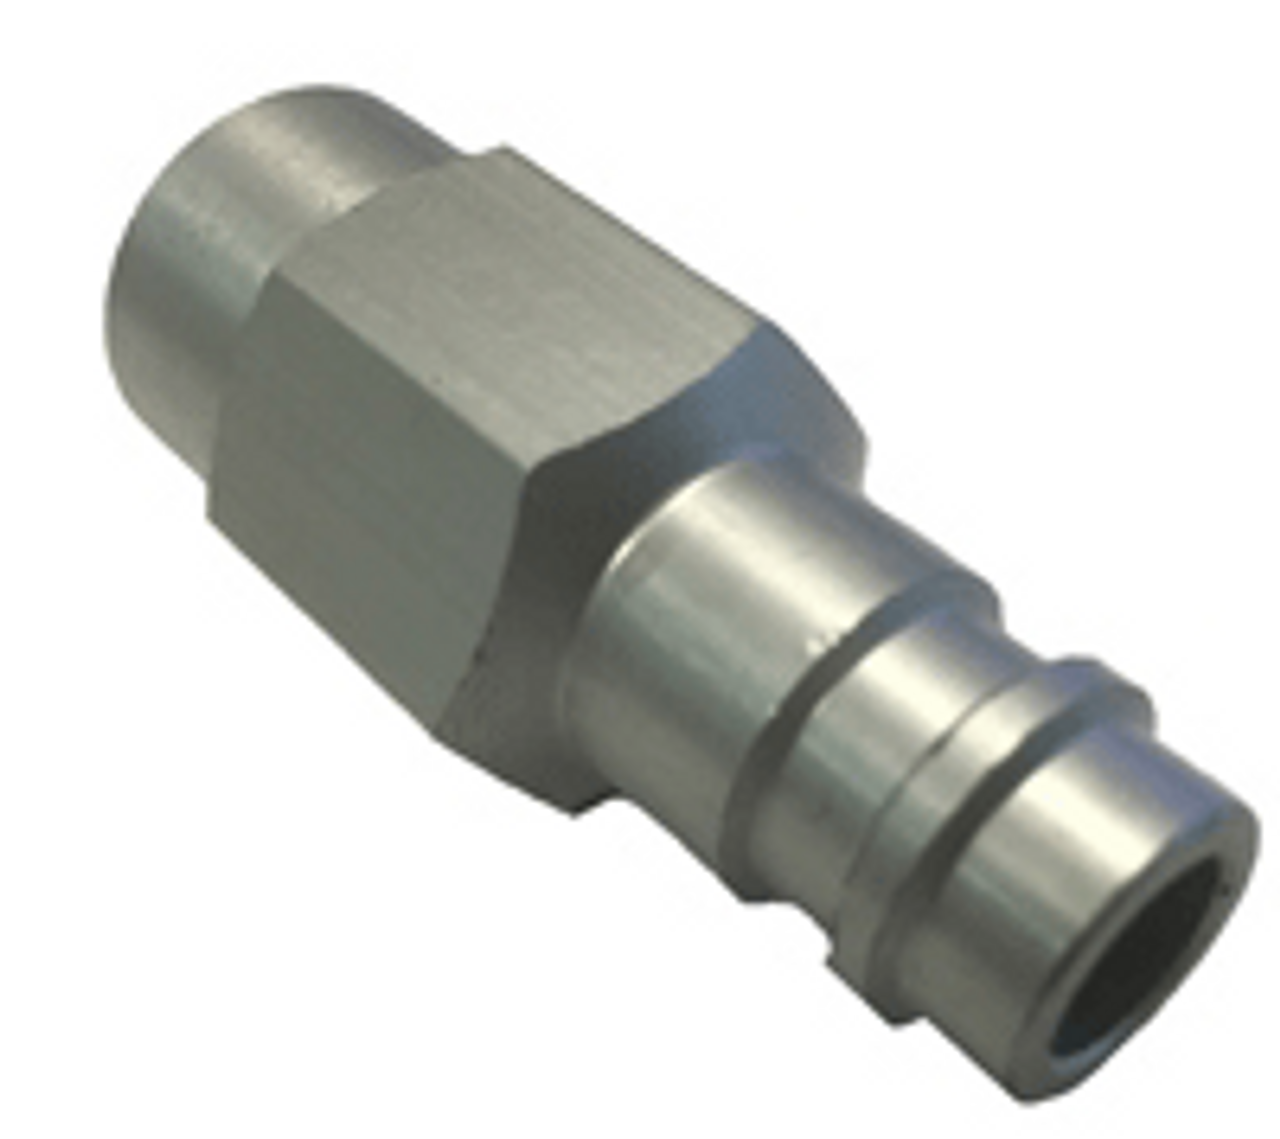 360-82697-00 Mahle Cylinder Adapter For YF1234